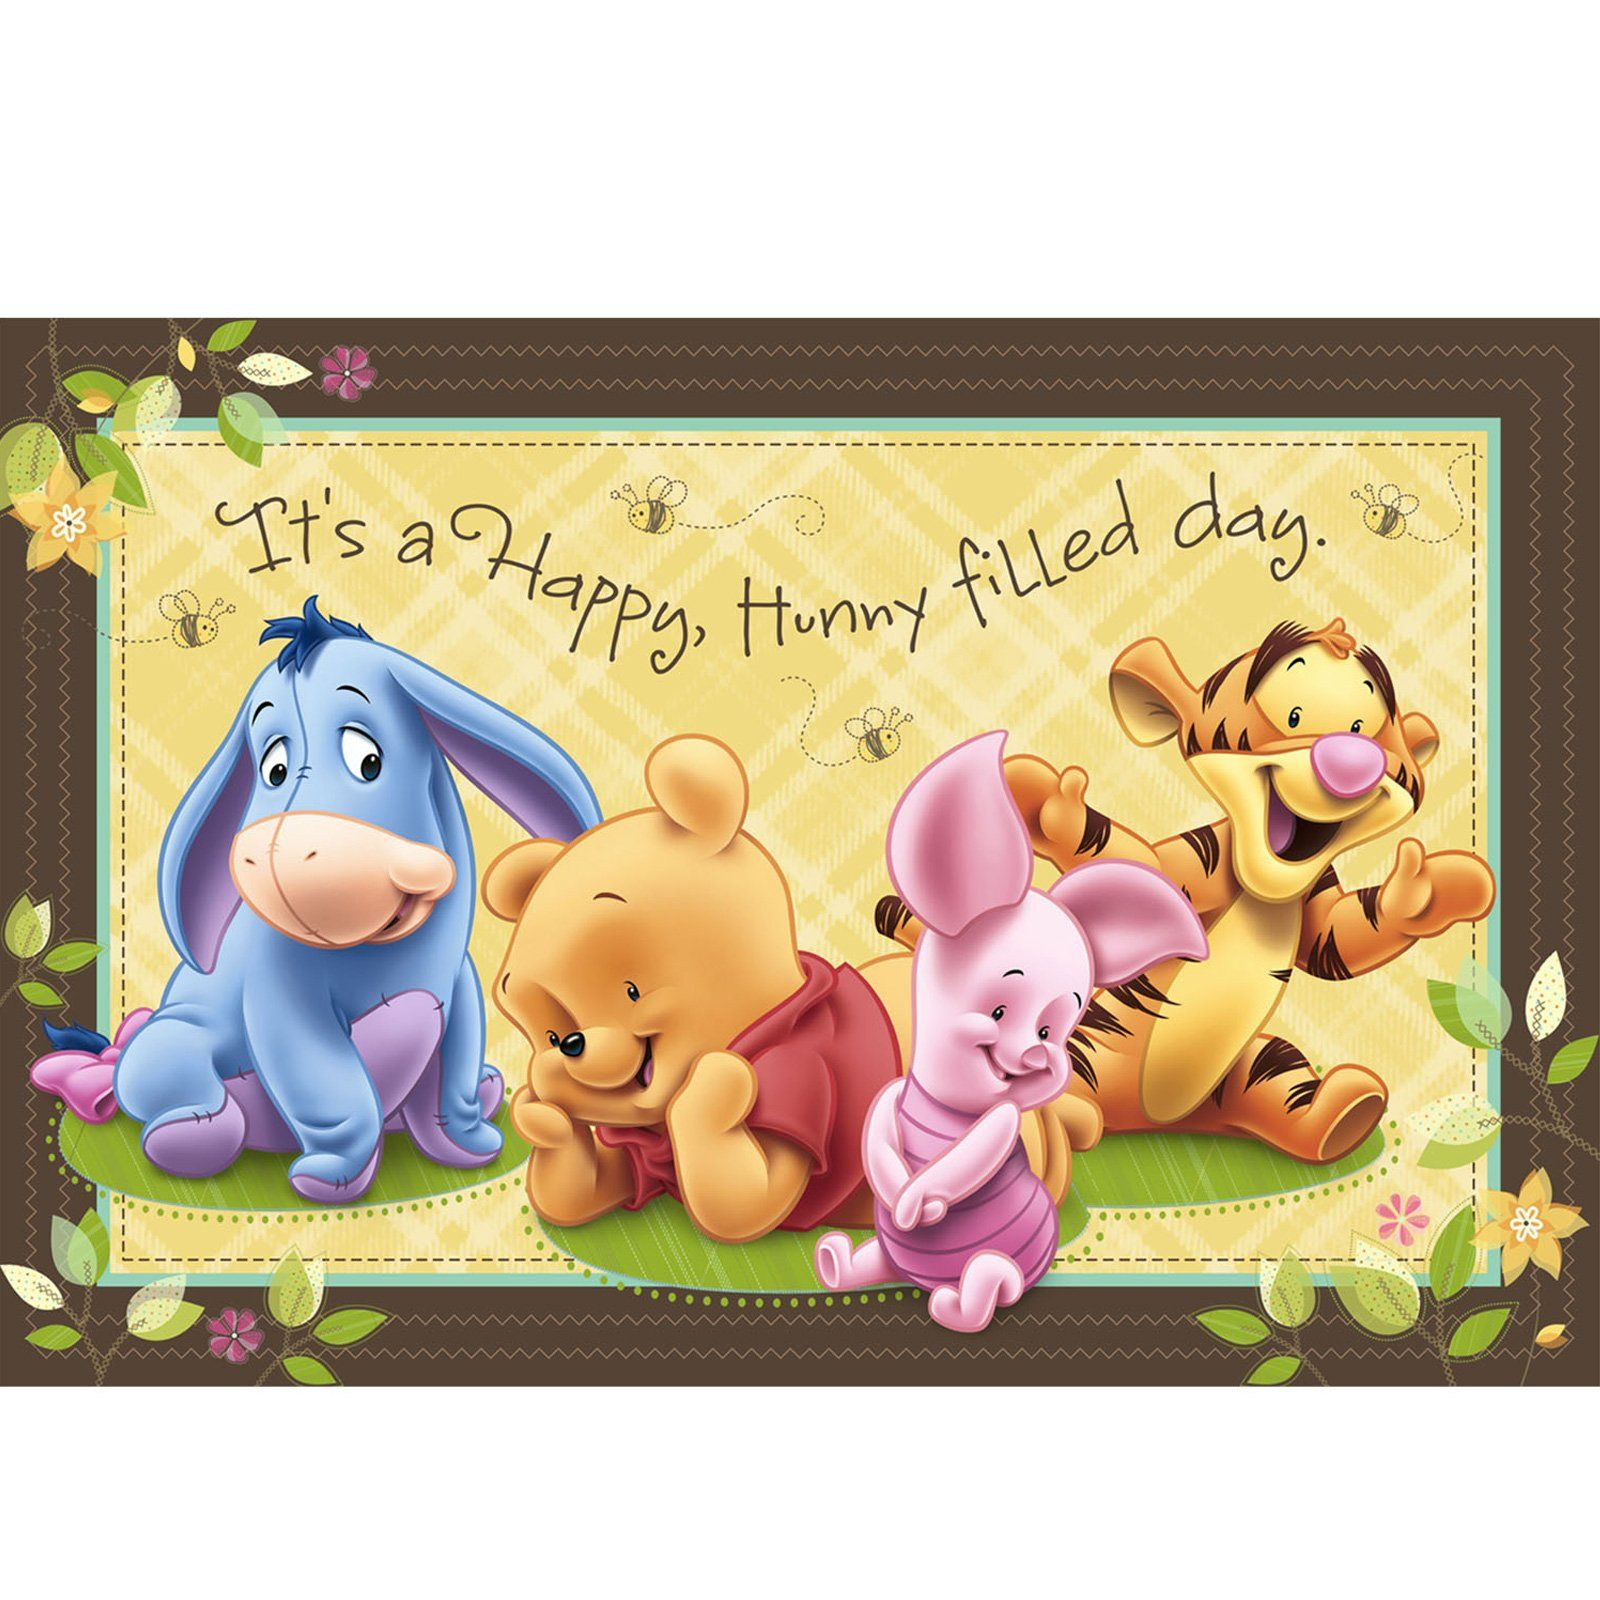 It is an image of Smart Baby Winnie the Pooh and Friends